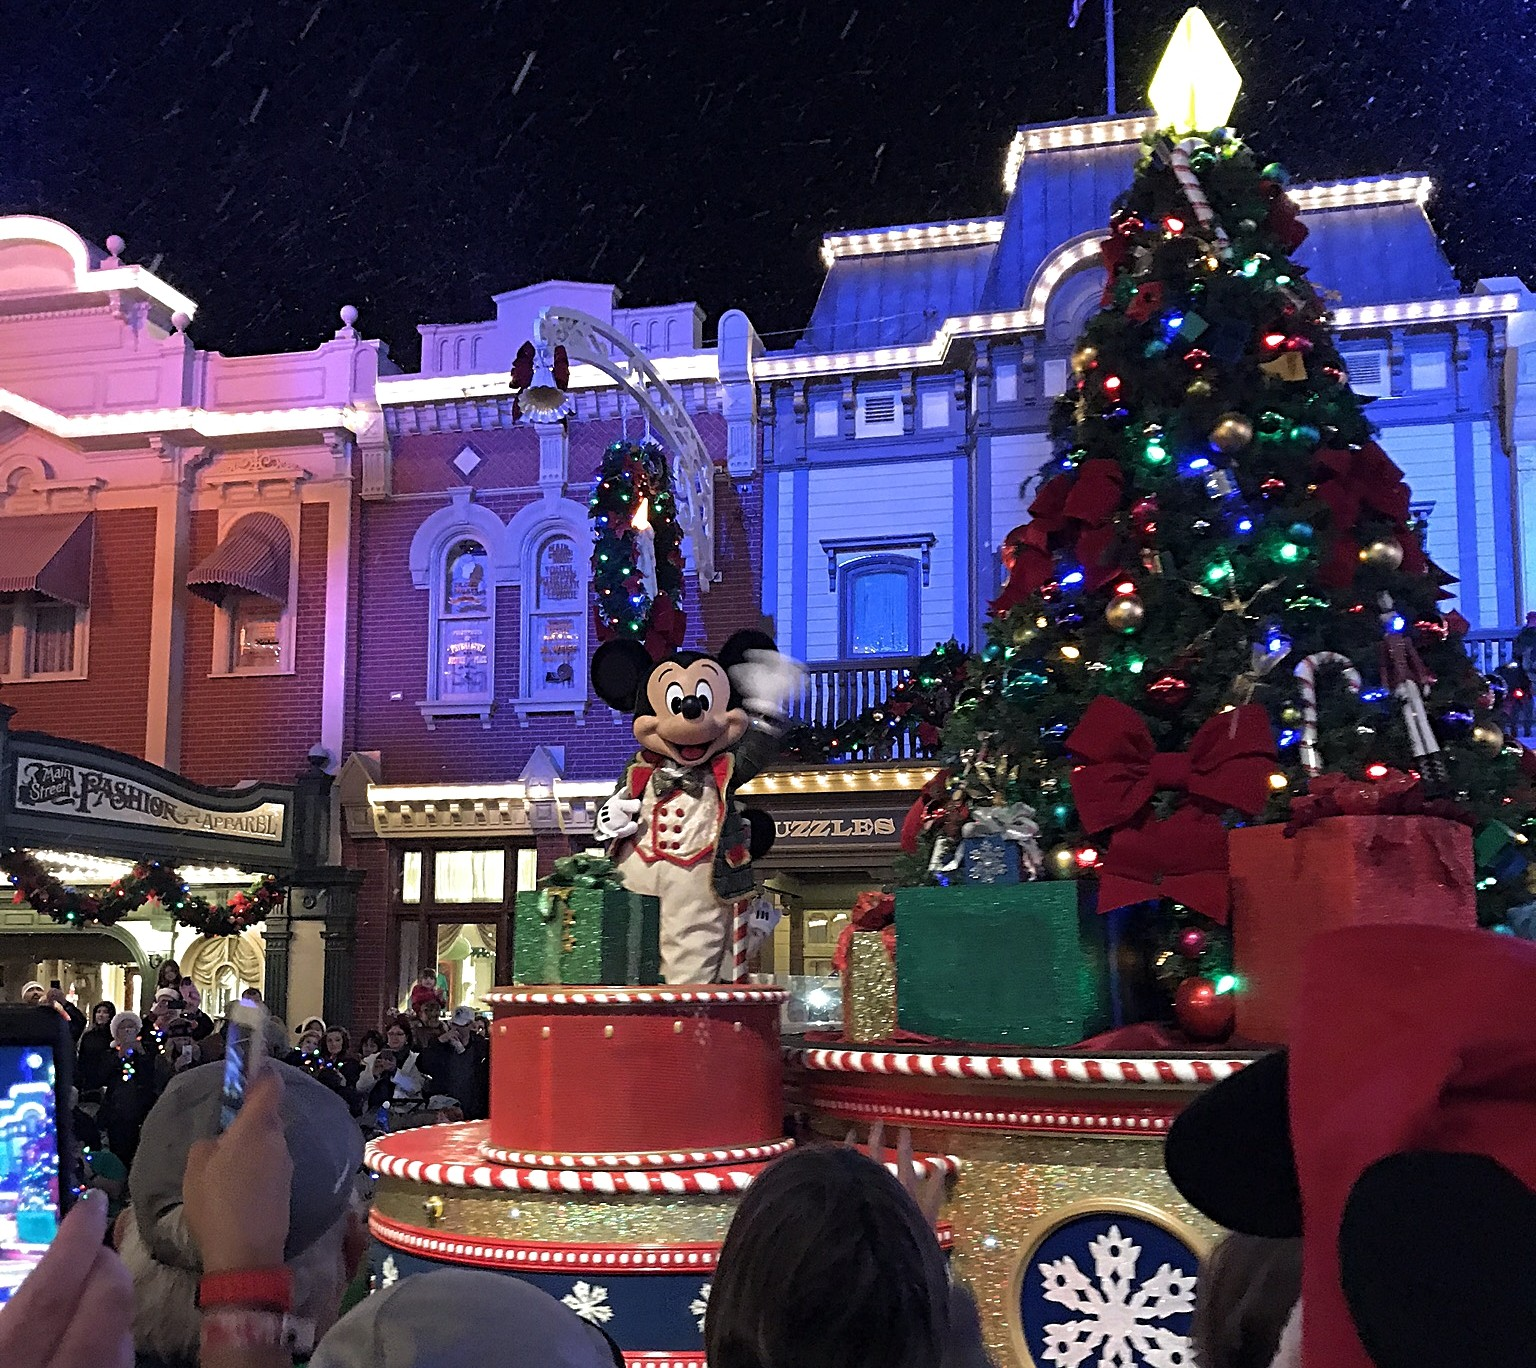 Mickey on a christmas float during a parade